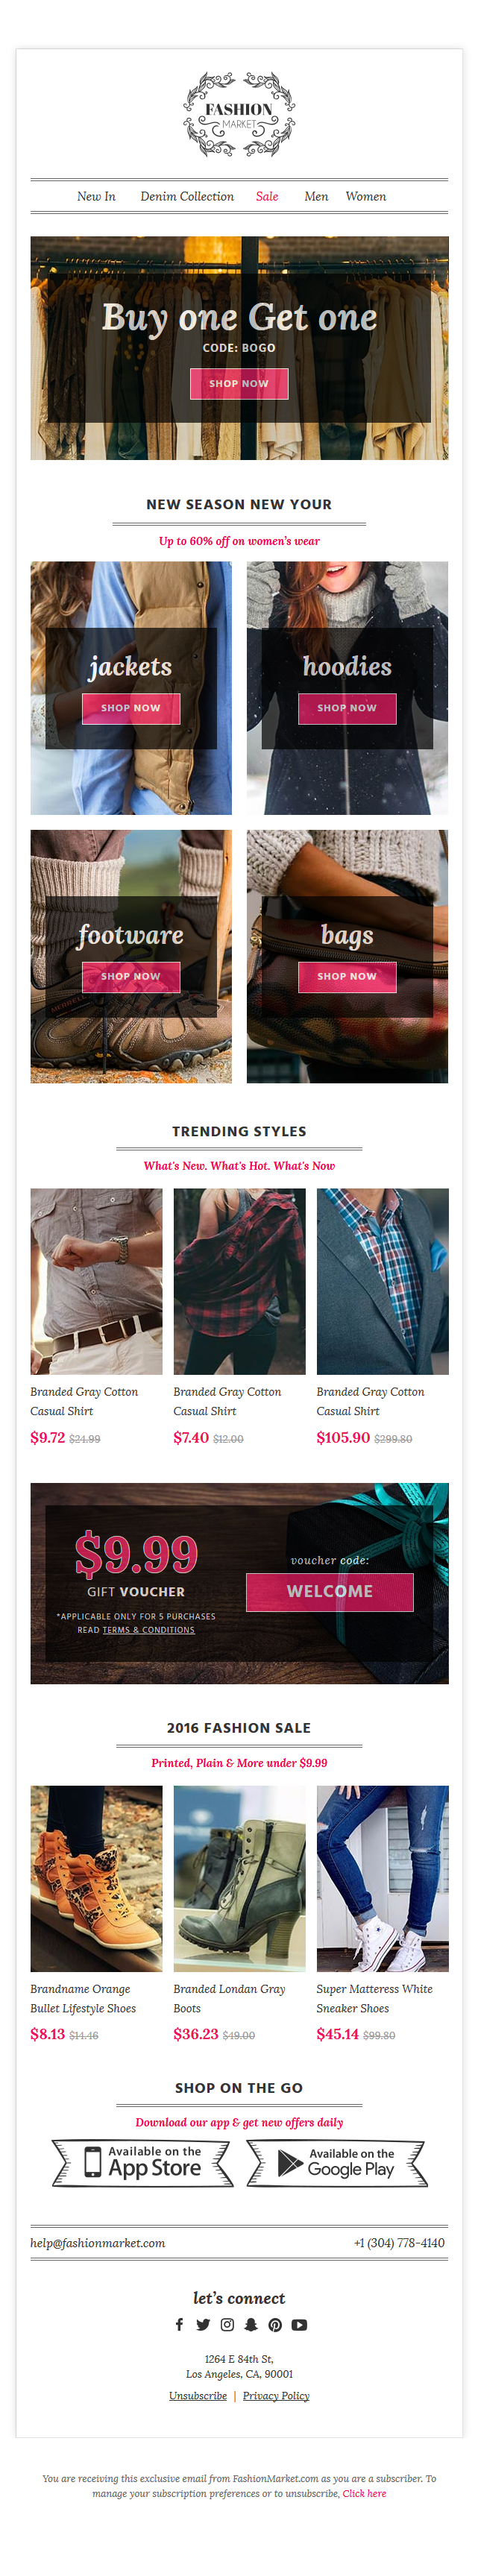 FashionMarket eCommerce Newsletter